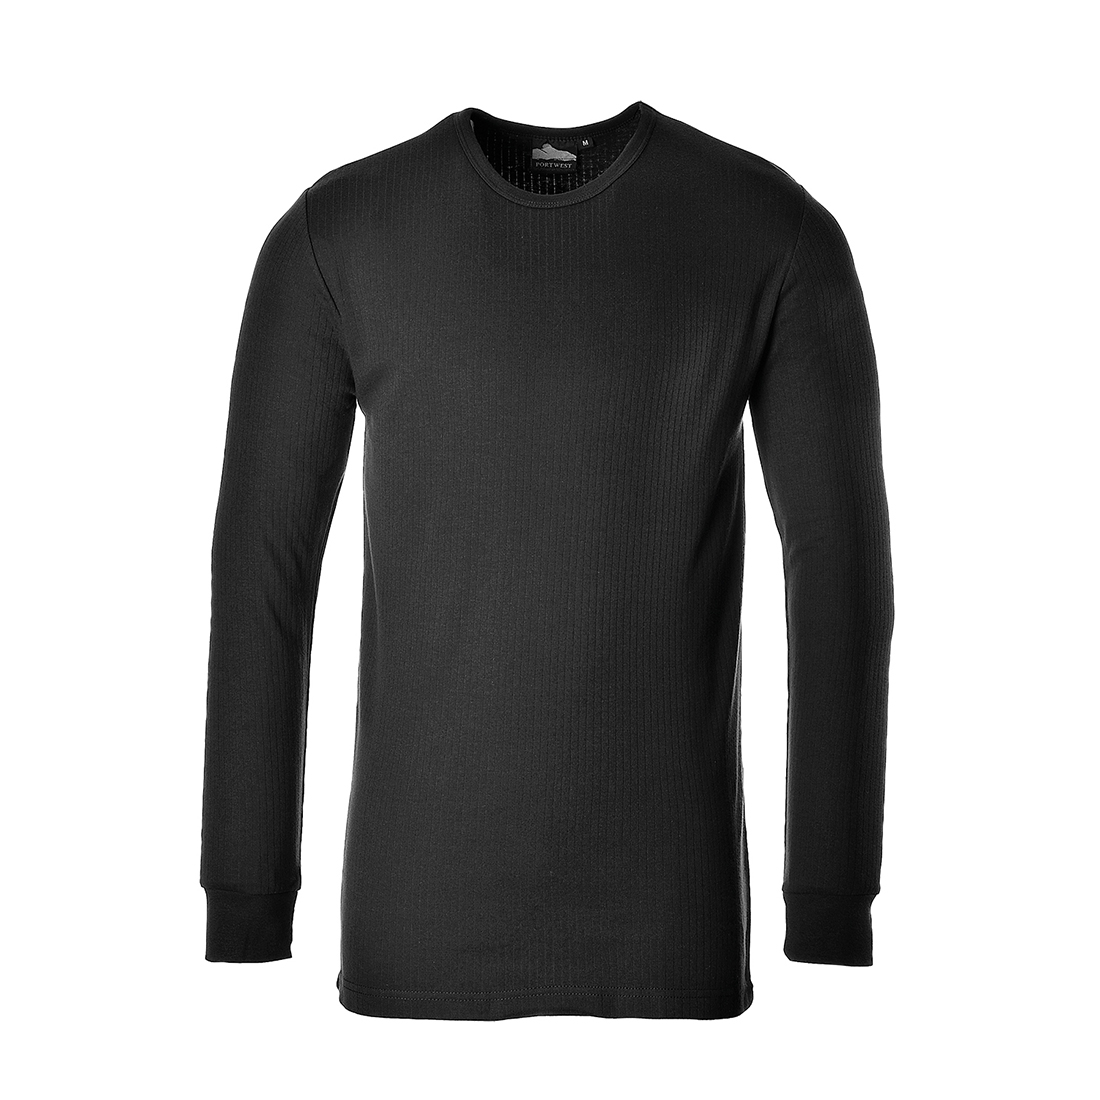 Thermal T-Shirt Long Sleeve Black 3 XL